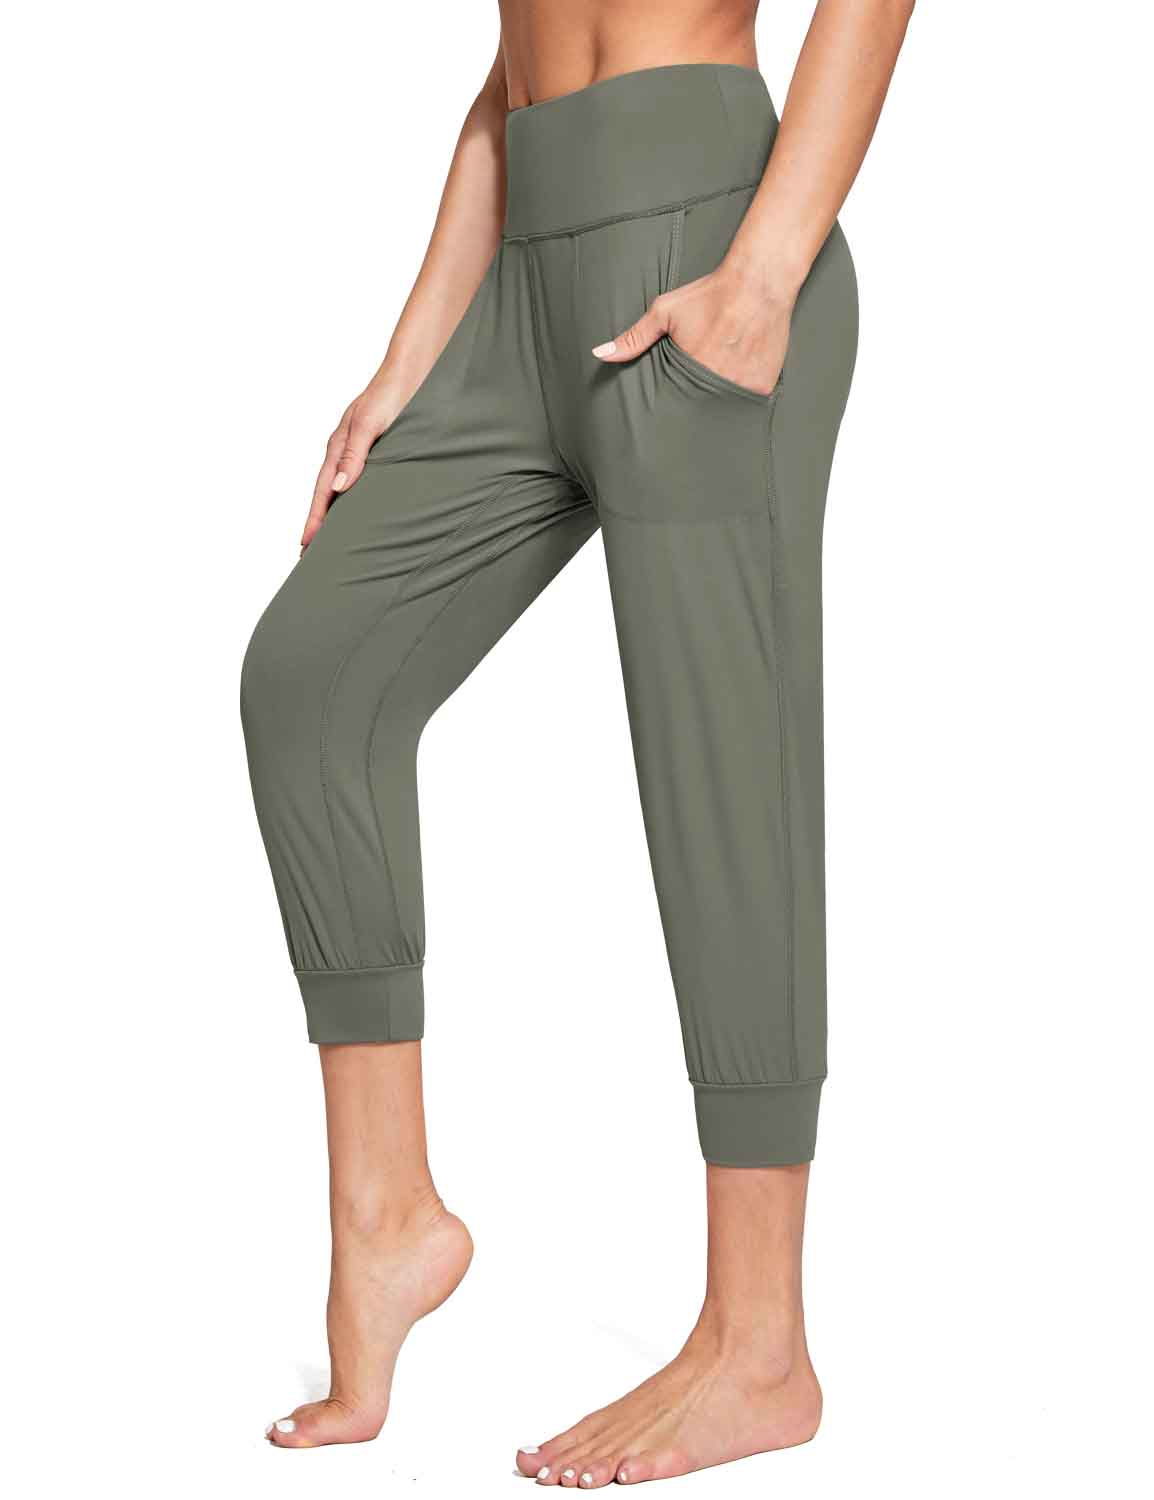 Baleaf Women's High Rise Soft Cropped Workout Pockets Joggers grey side